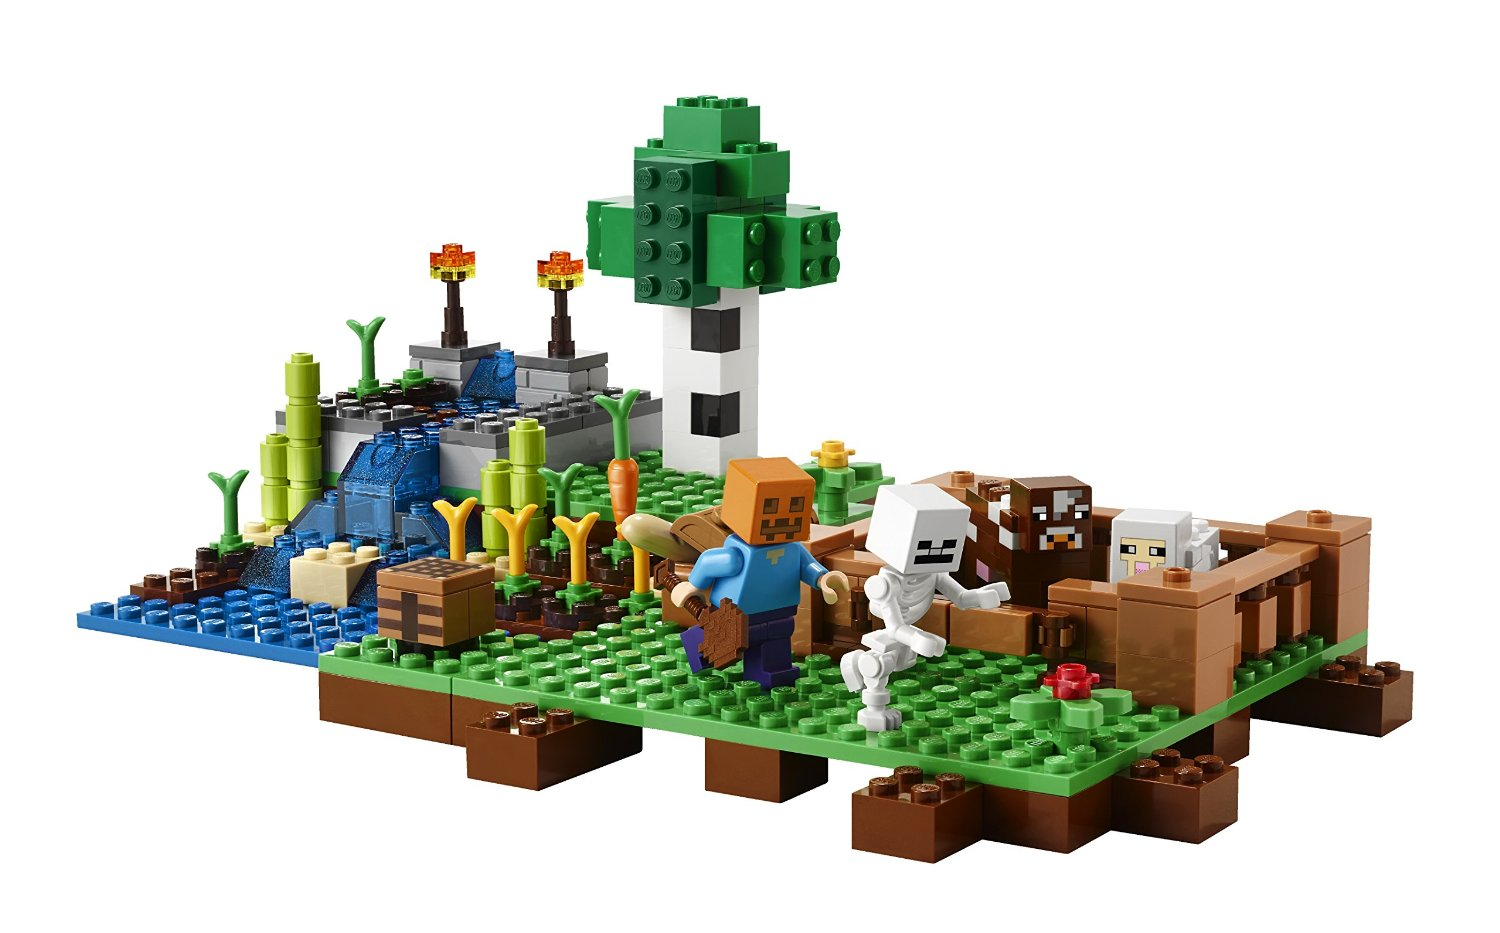 Minecraft Pop Store No Disassemble Lego Ideas Proposal Makes It Easy To But I Believe This Is Precisely The Purpose Of Series Launch Sets With Minimum Pieces Needed Assemble Proposed Scenario